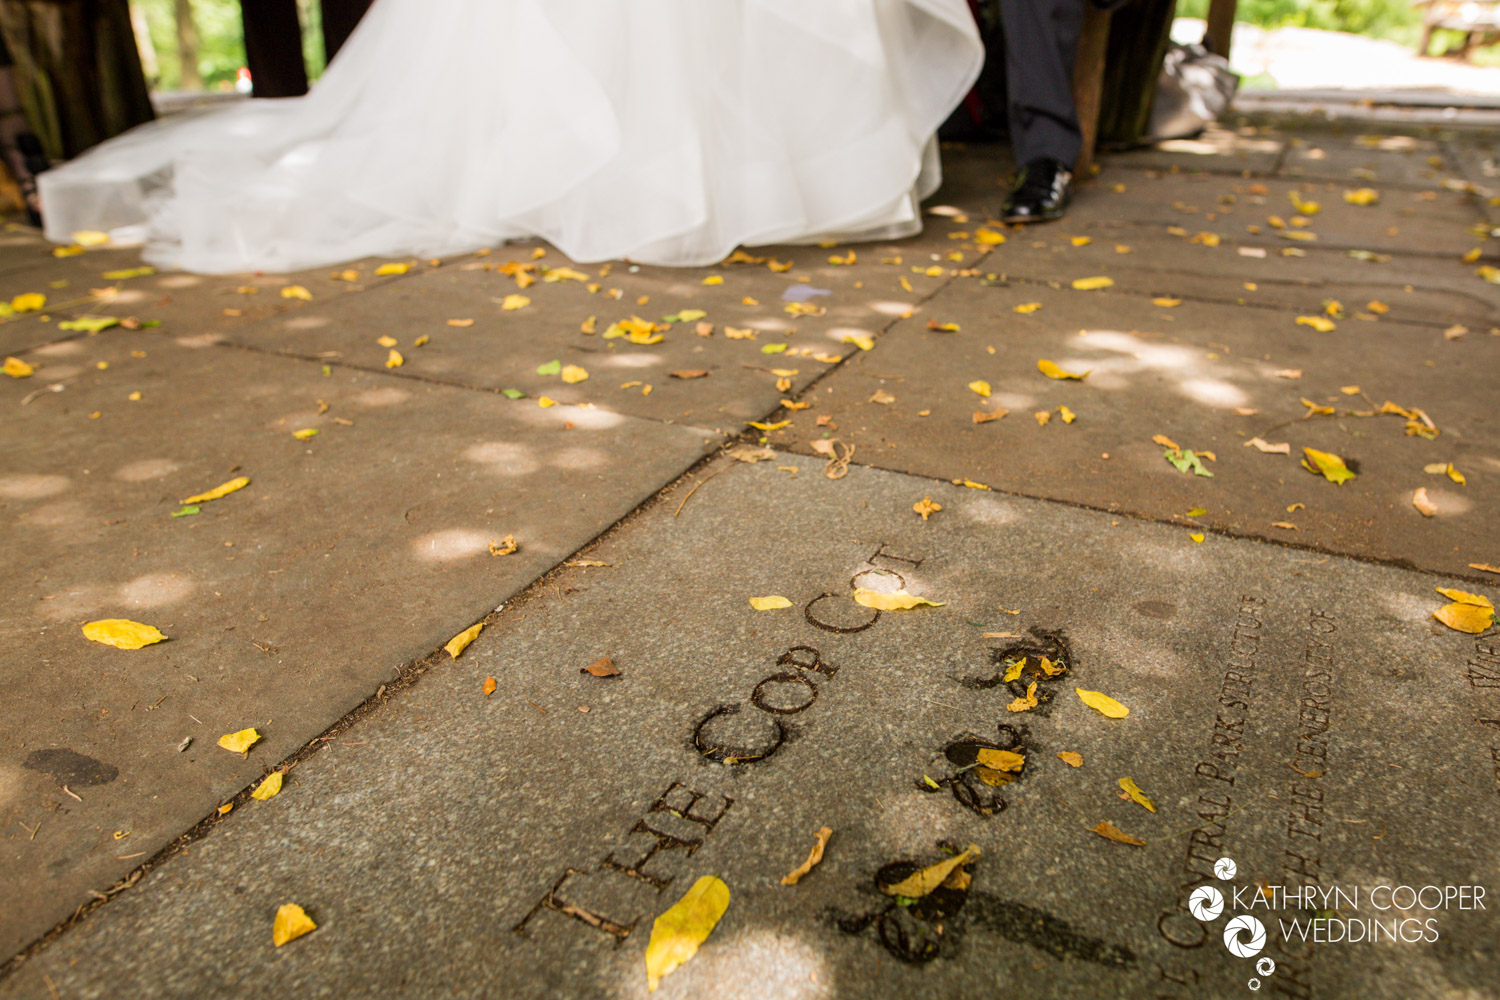 The Cop Cot wedding ceremony space in Central Park - Kathryn Cooper Weddings